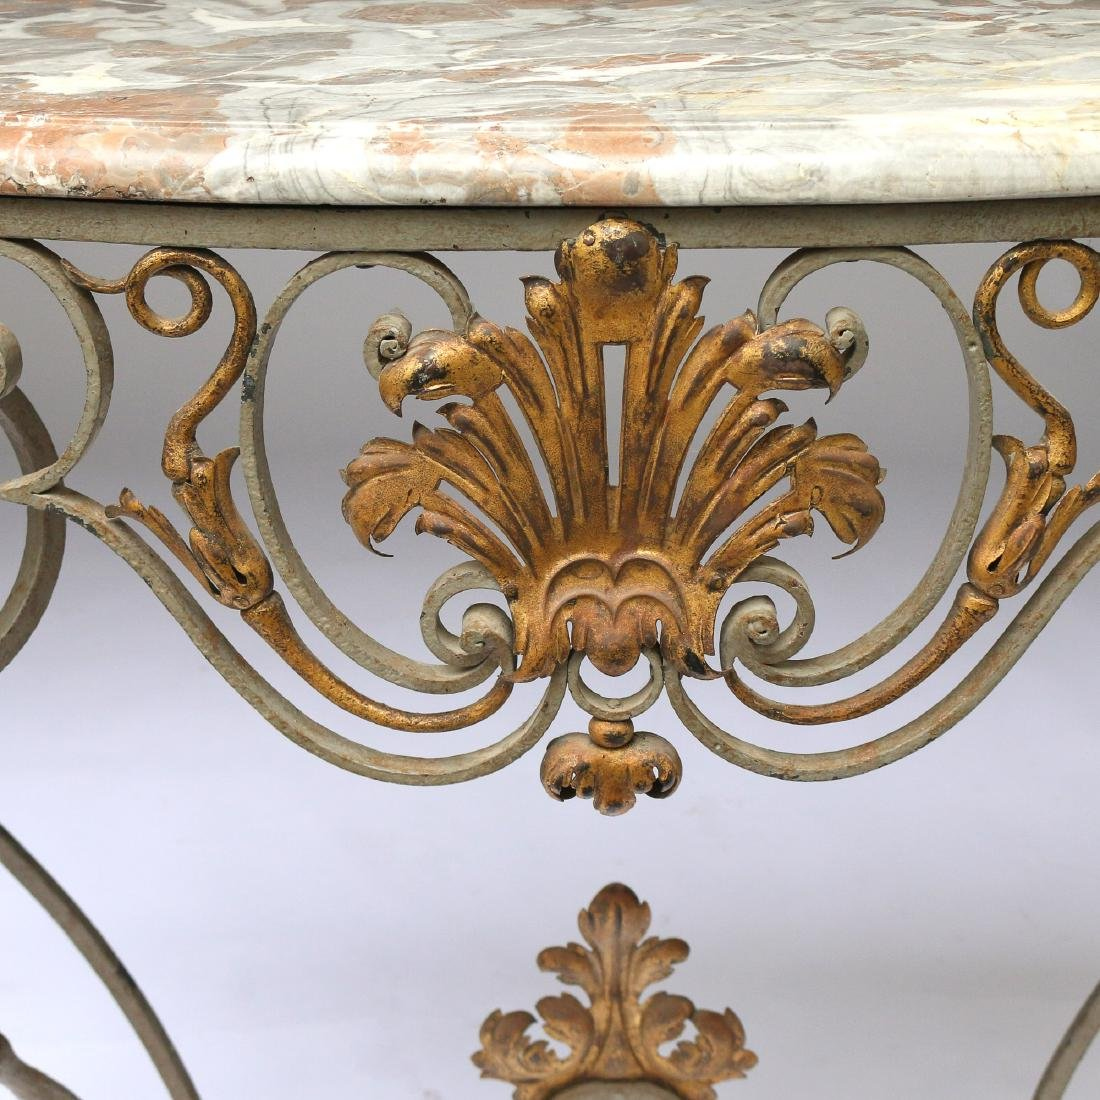 ANTIQUE FRENCH WROUGHT-IRON & MARBLE CONSOLE TABLE - 4